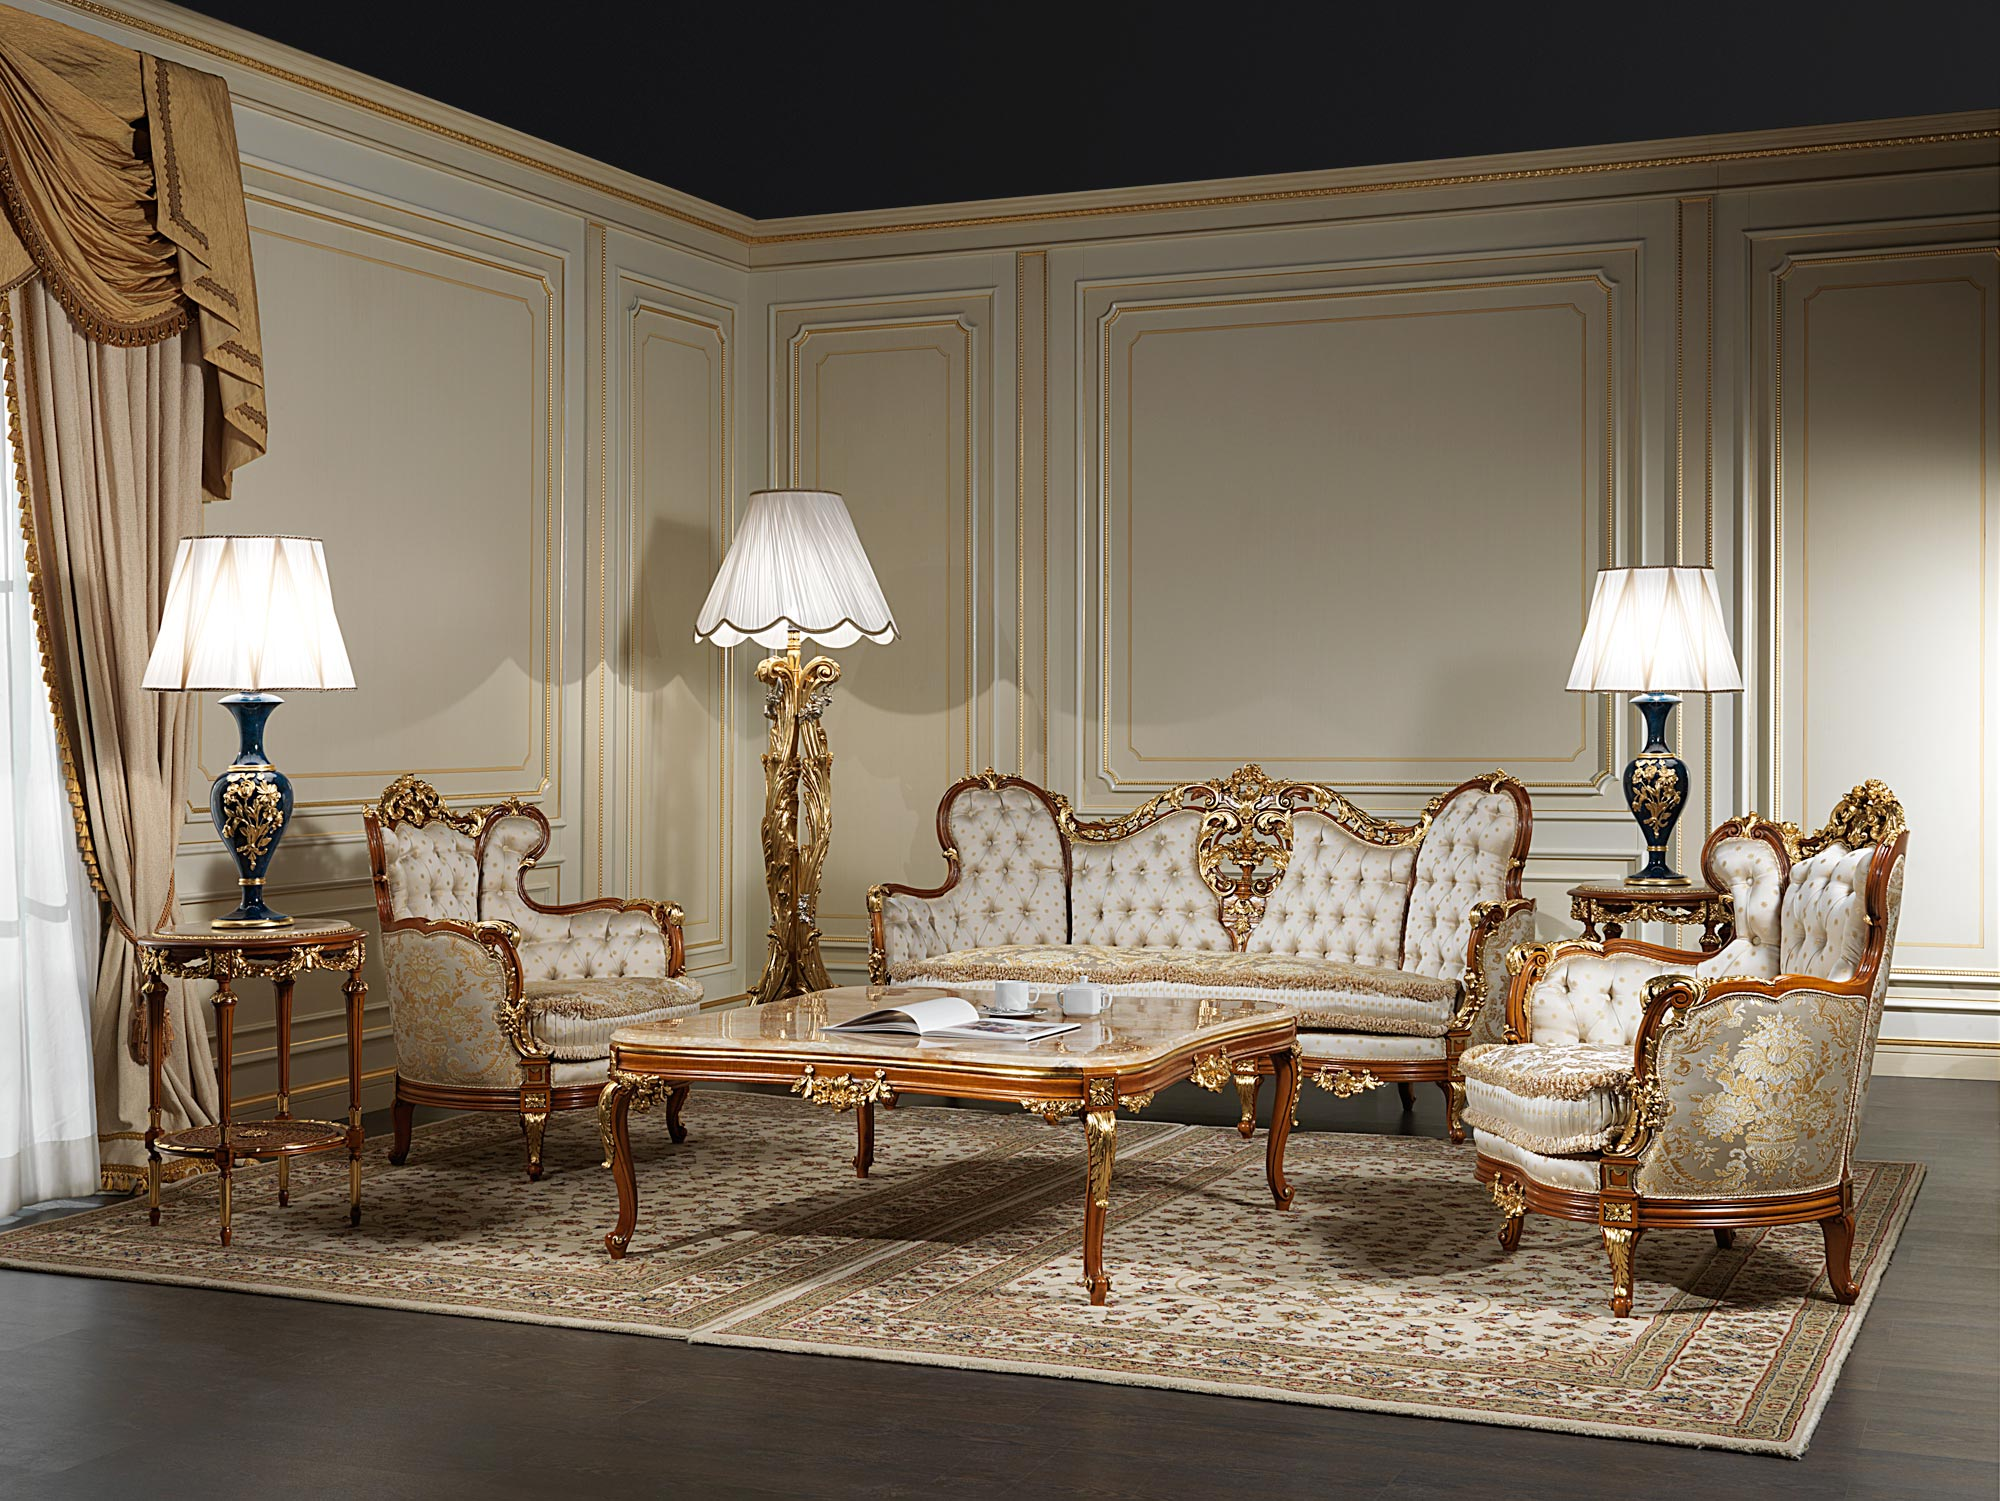 Living room xix made in italy vimercati classic furniture for Classic living room furniture